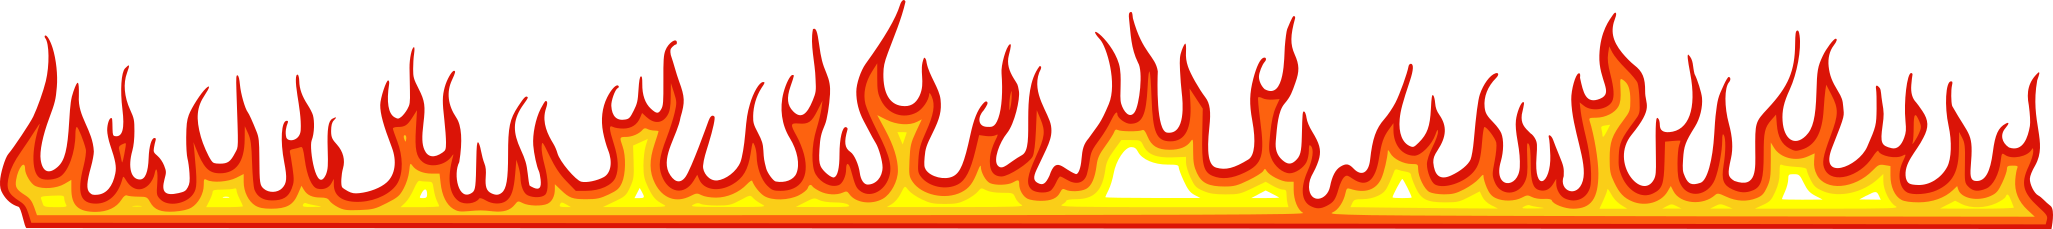 cartoon-fire-border-line-3.png